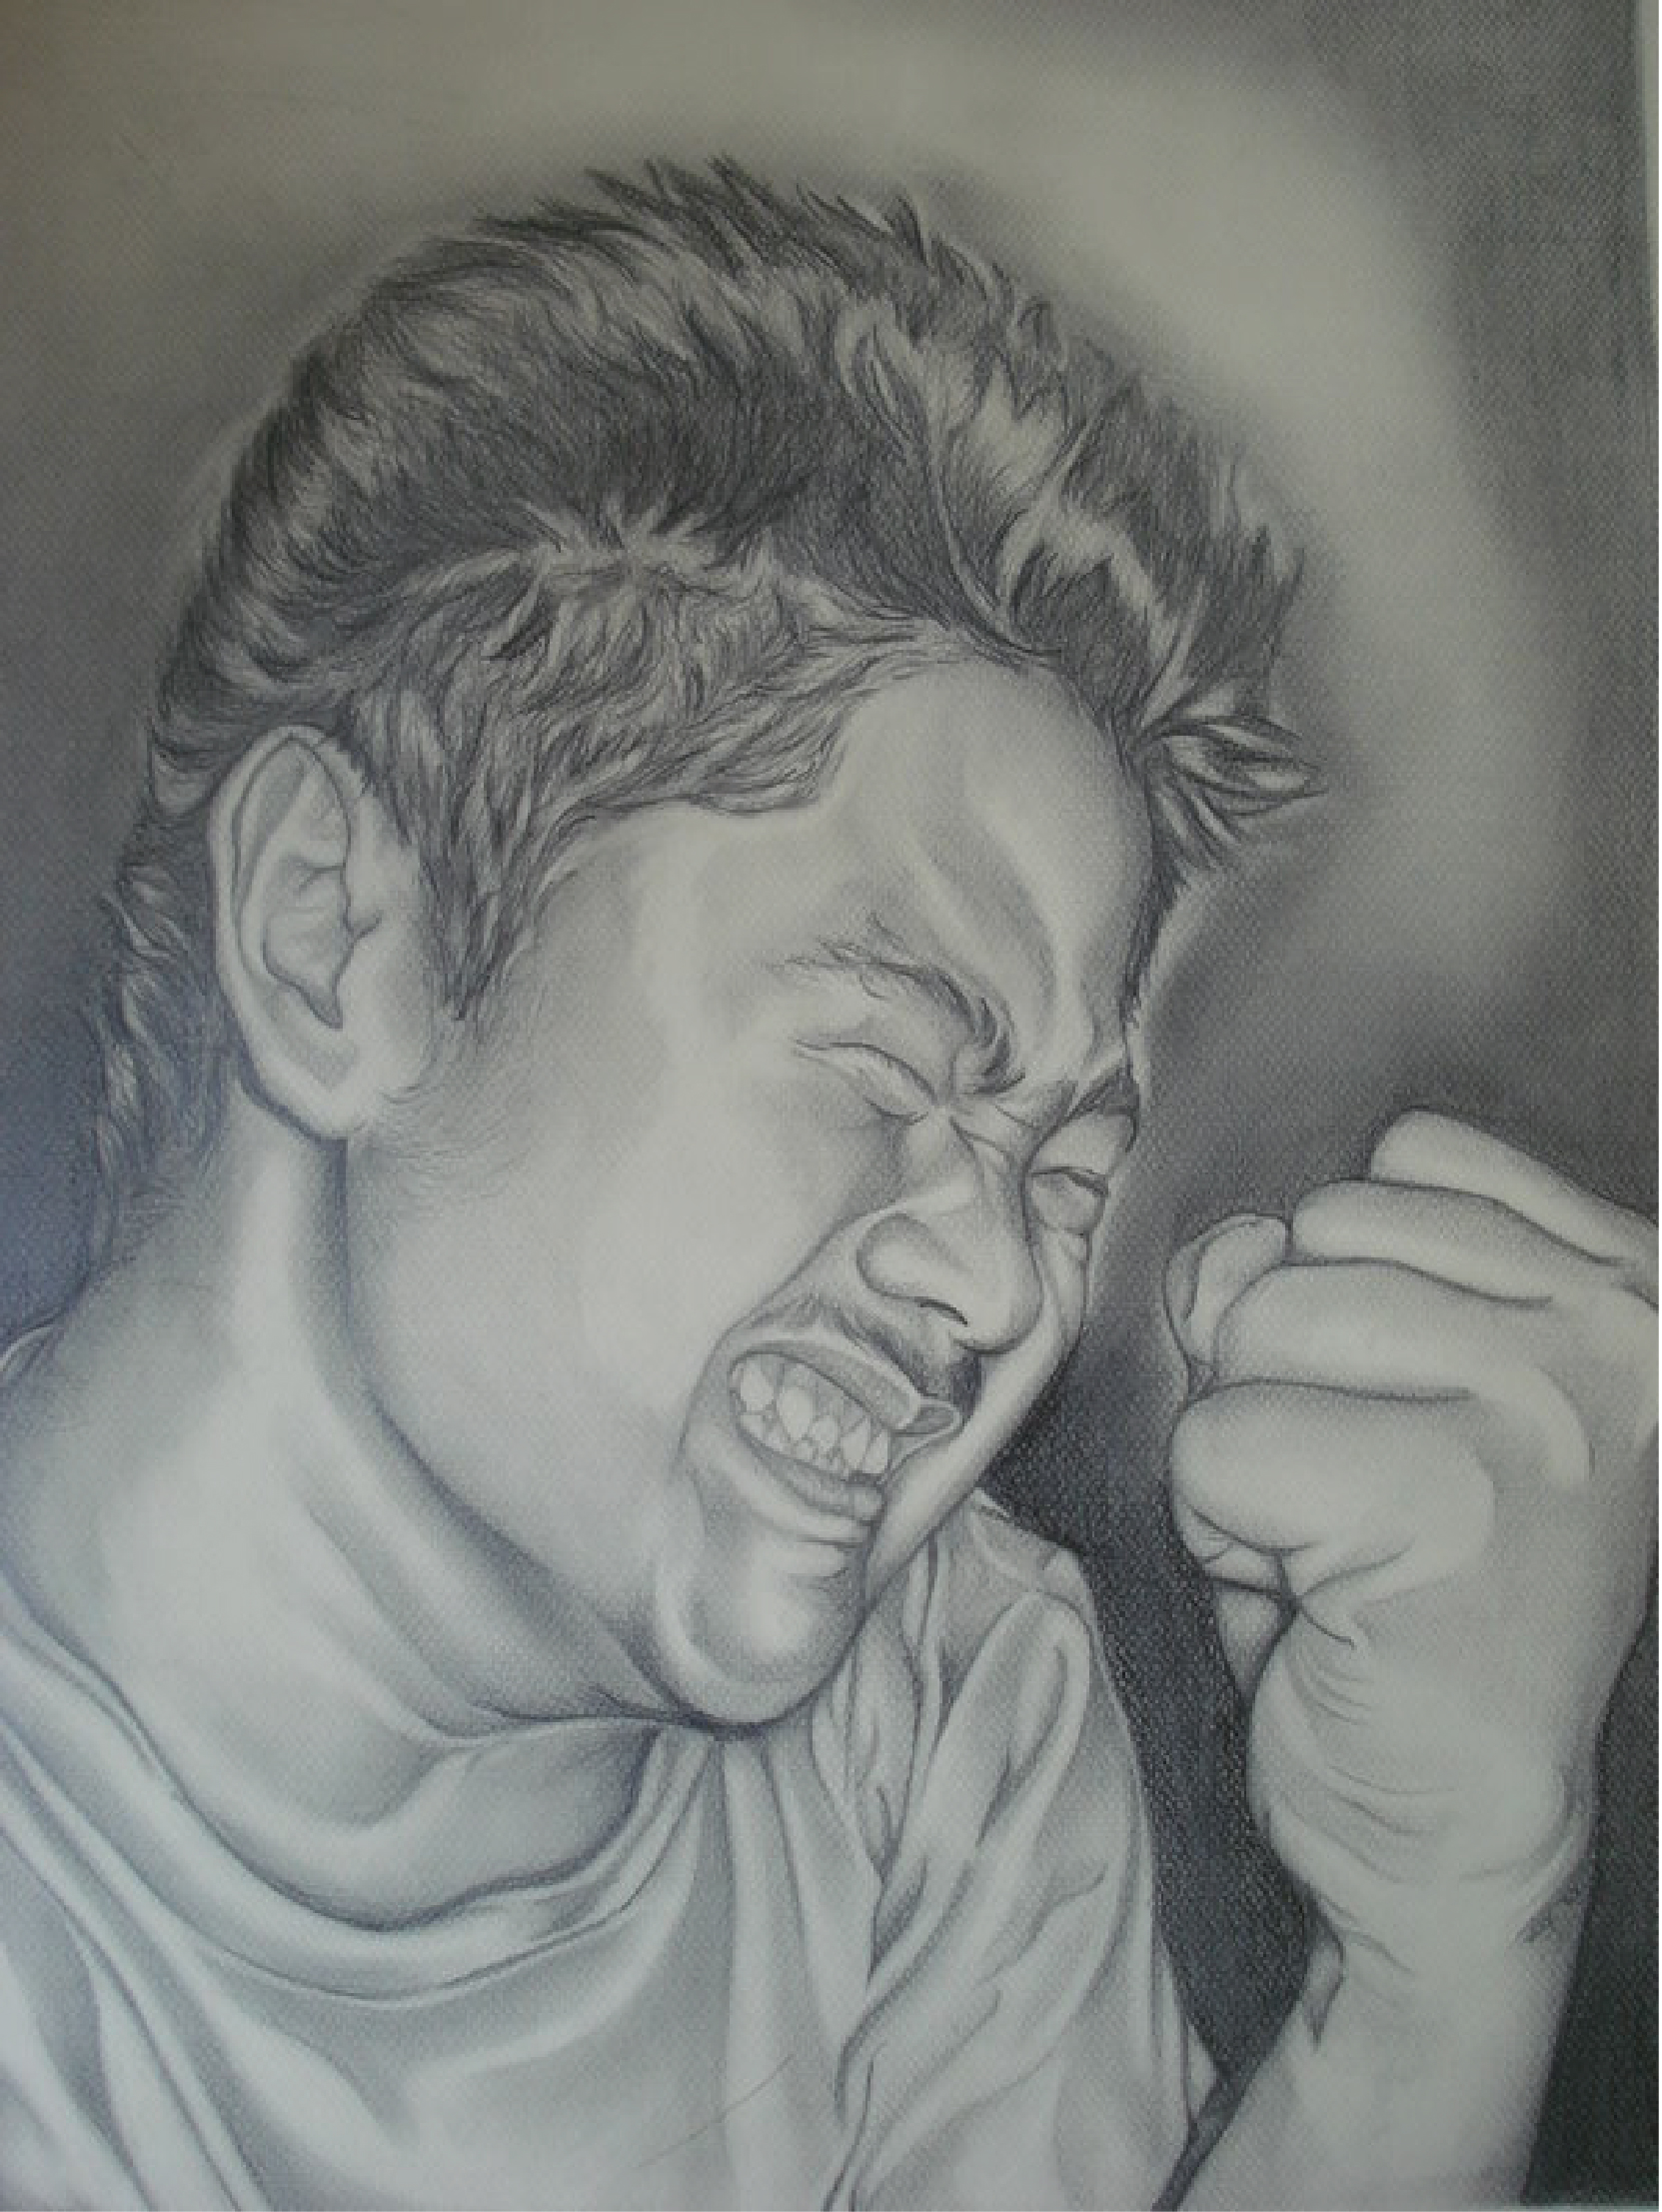 Untitled Self Portrait, graphite, 2007